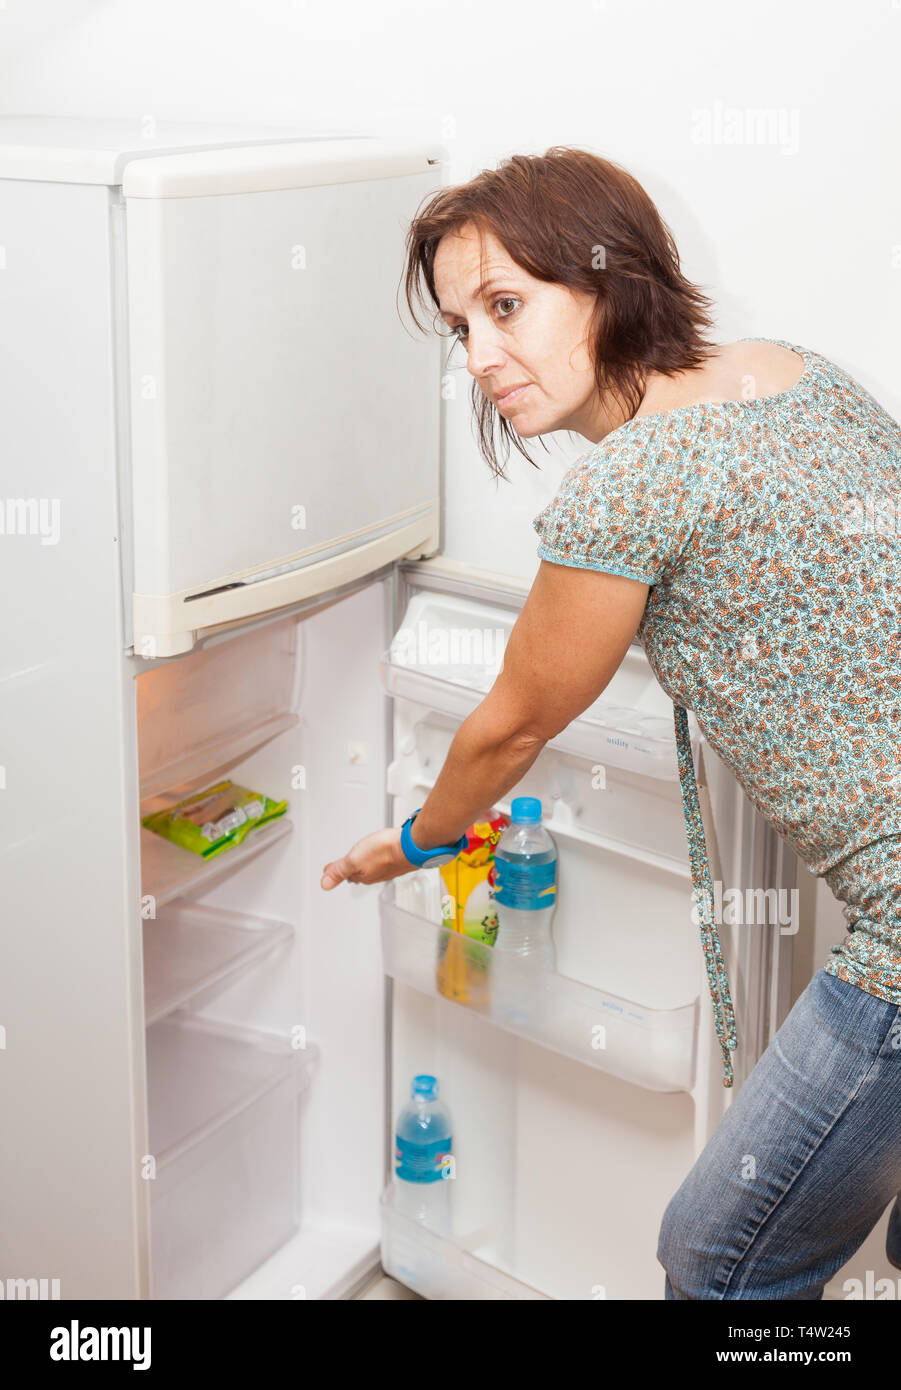 A woman shows with her hand in an empty fridge - Stock Image